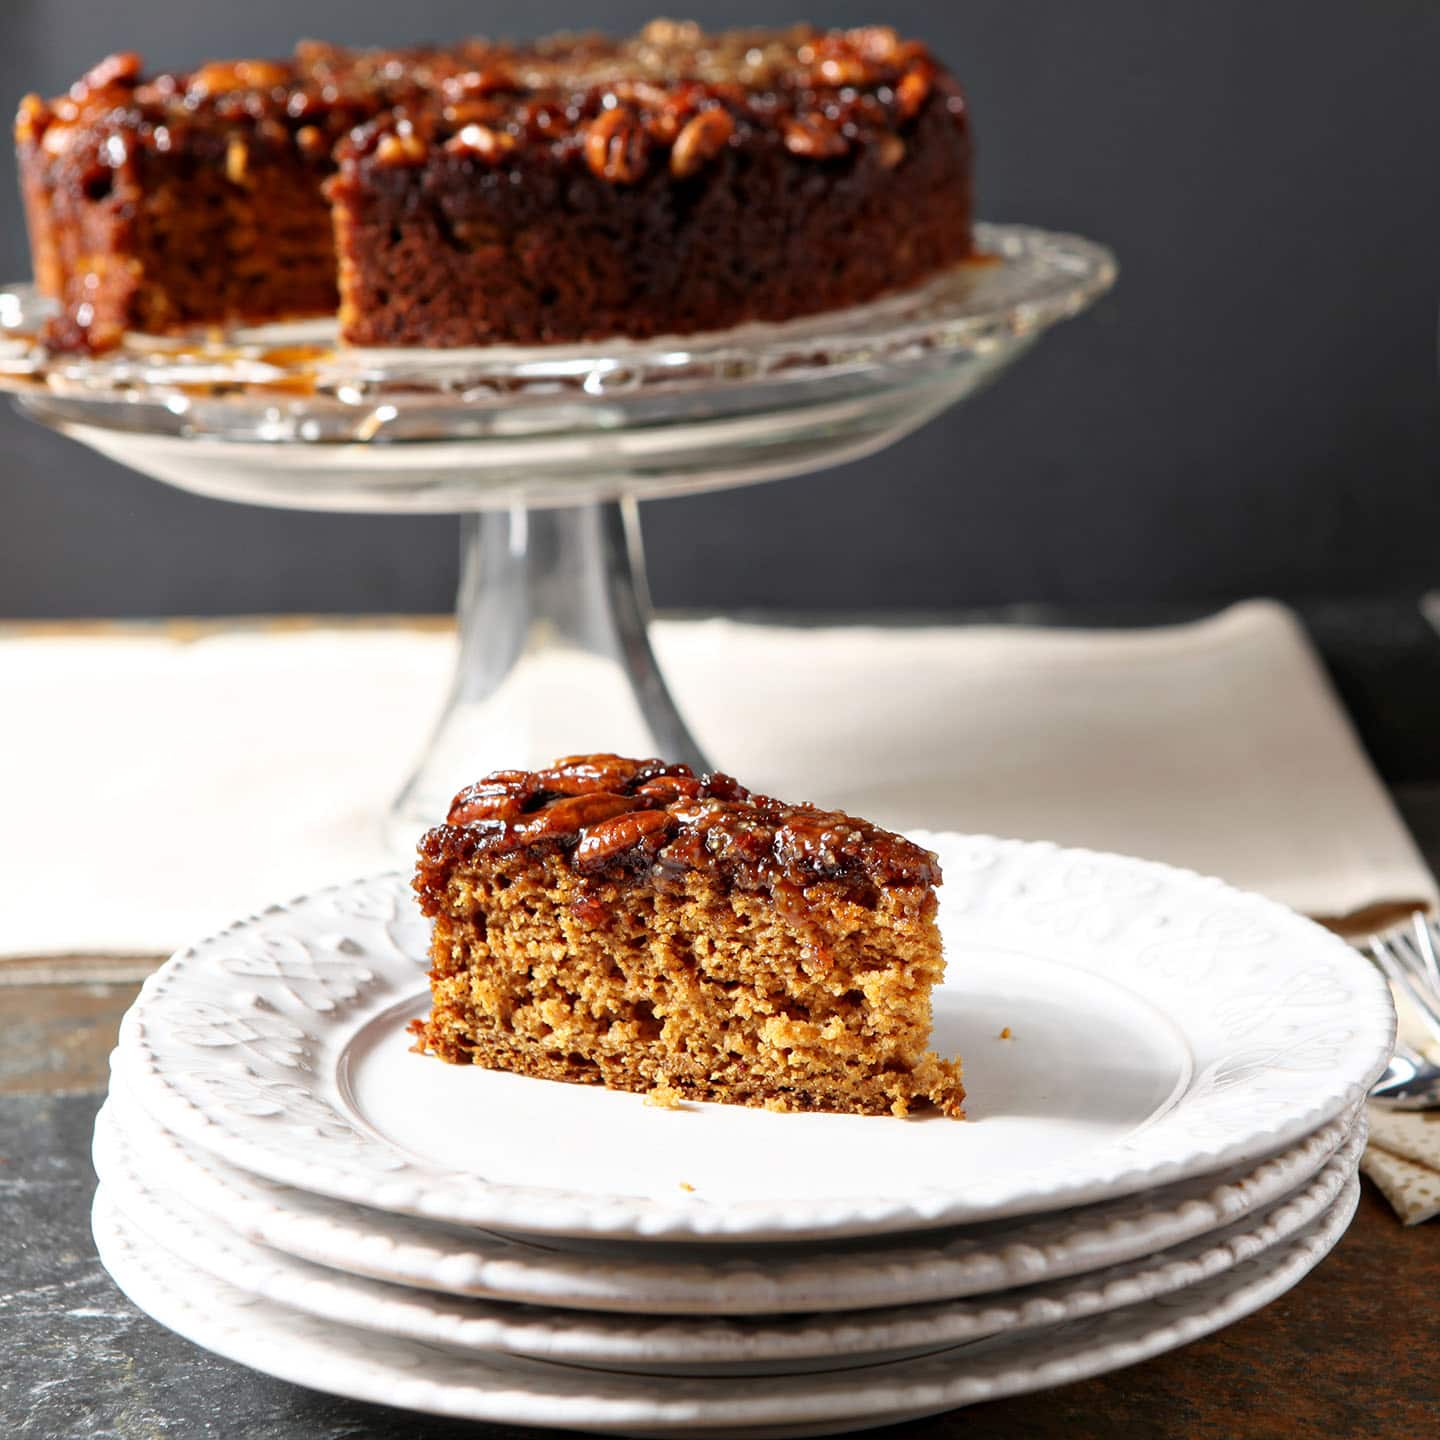 A slice of pumpkin cake with a praline topping sits on a white plate in front of a cake stand holding the rest of the dessert